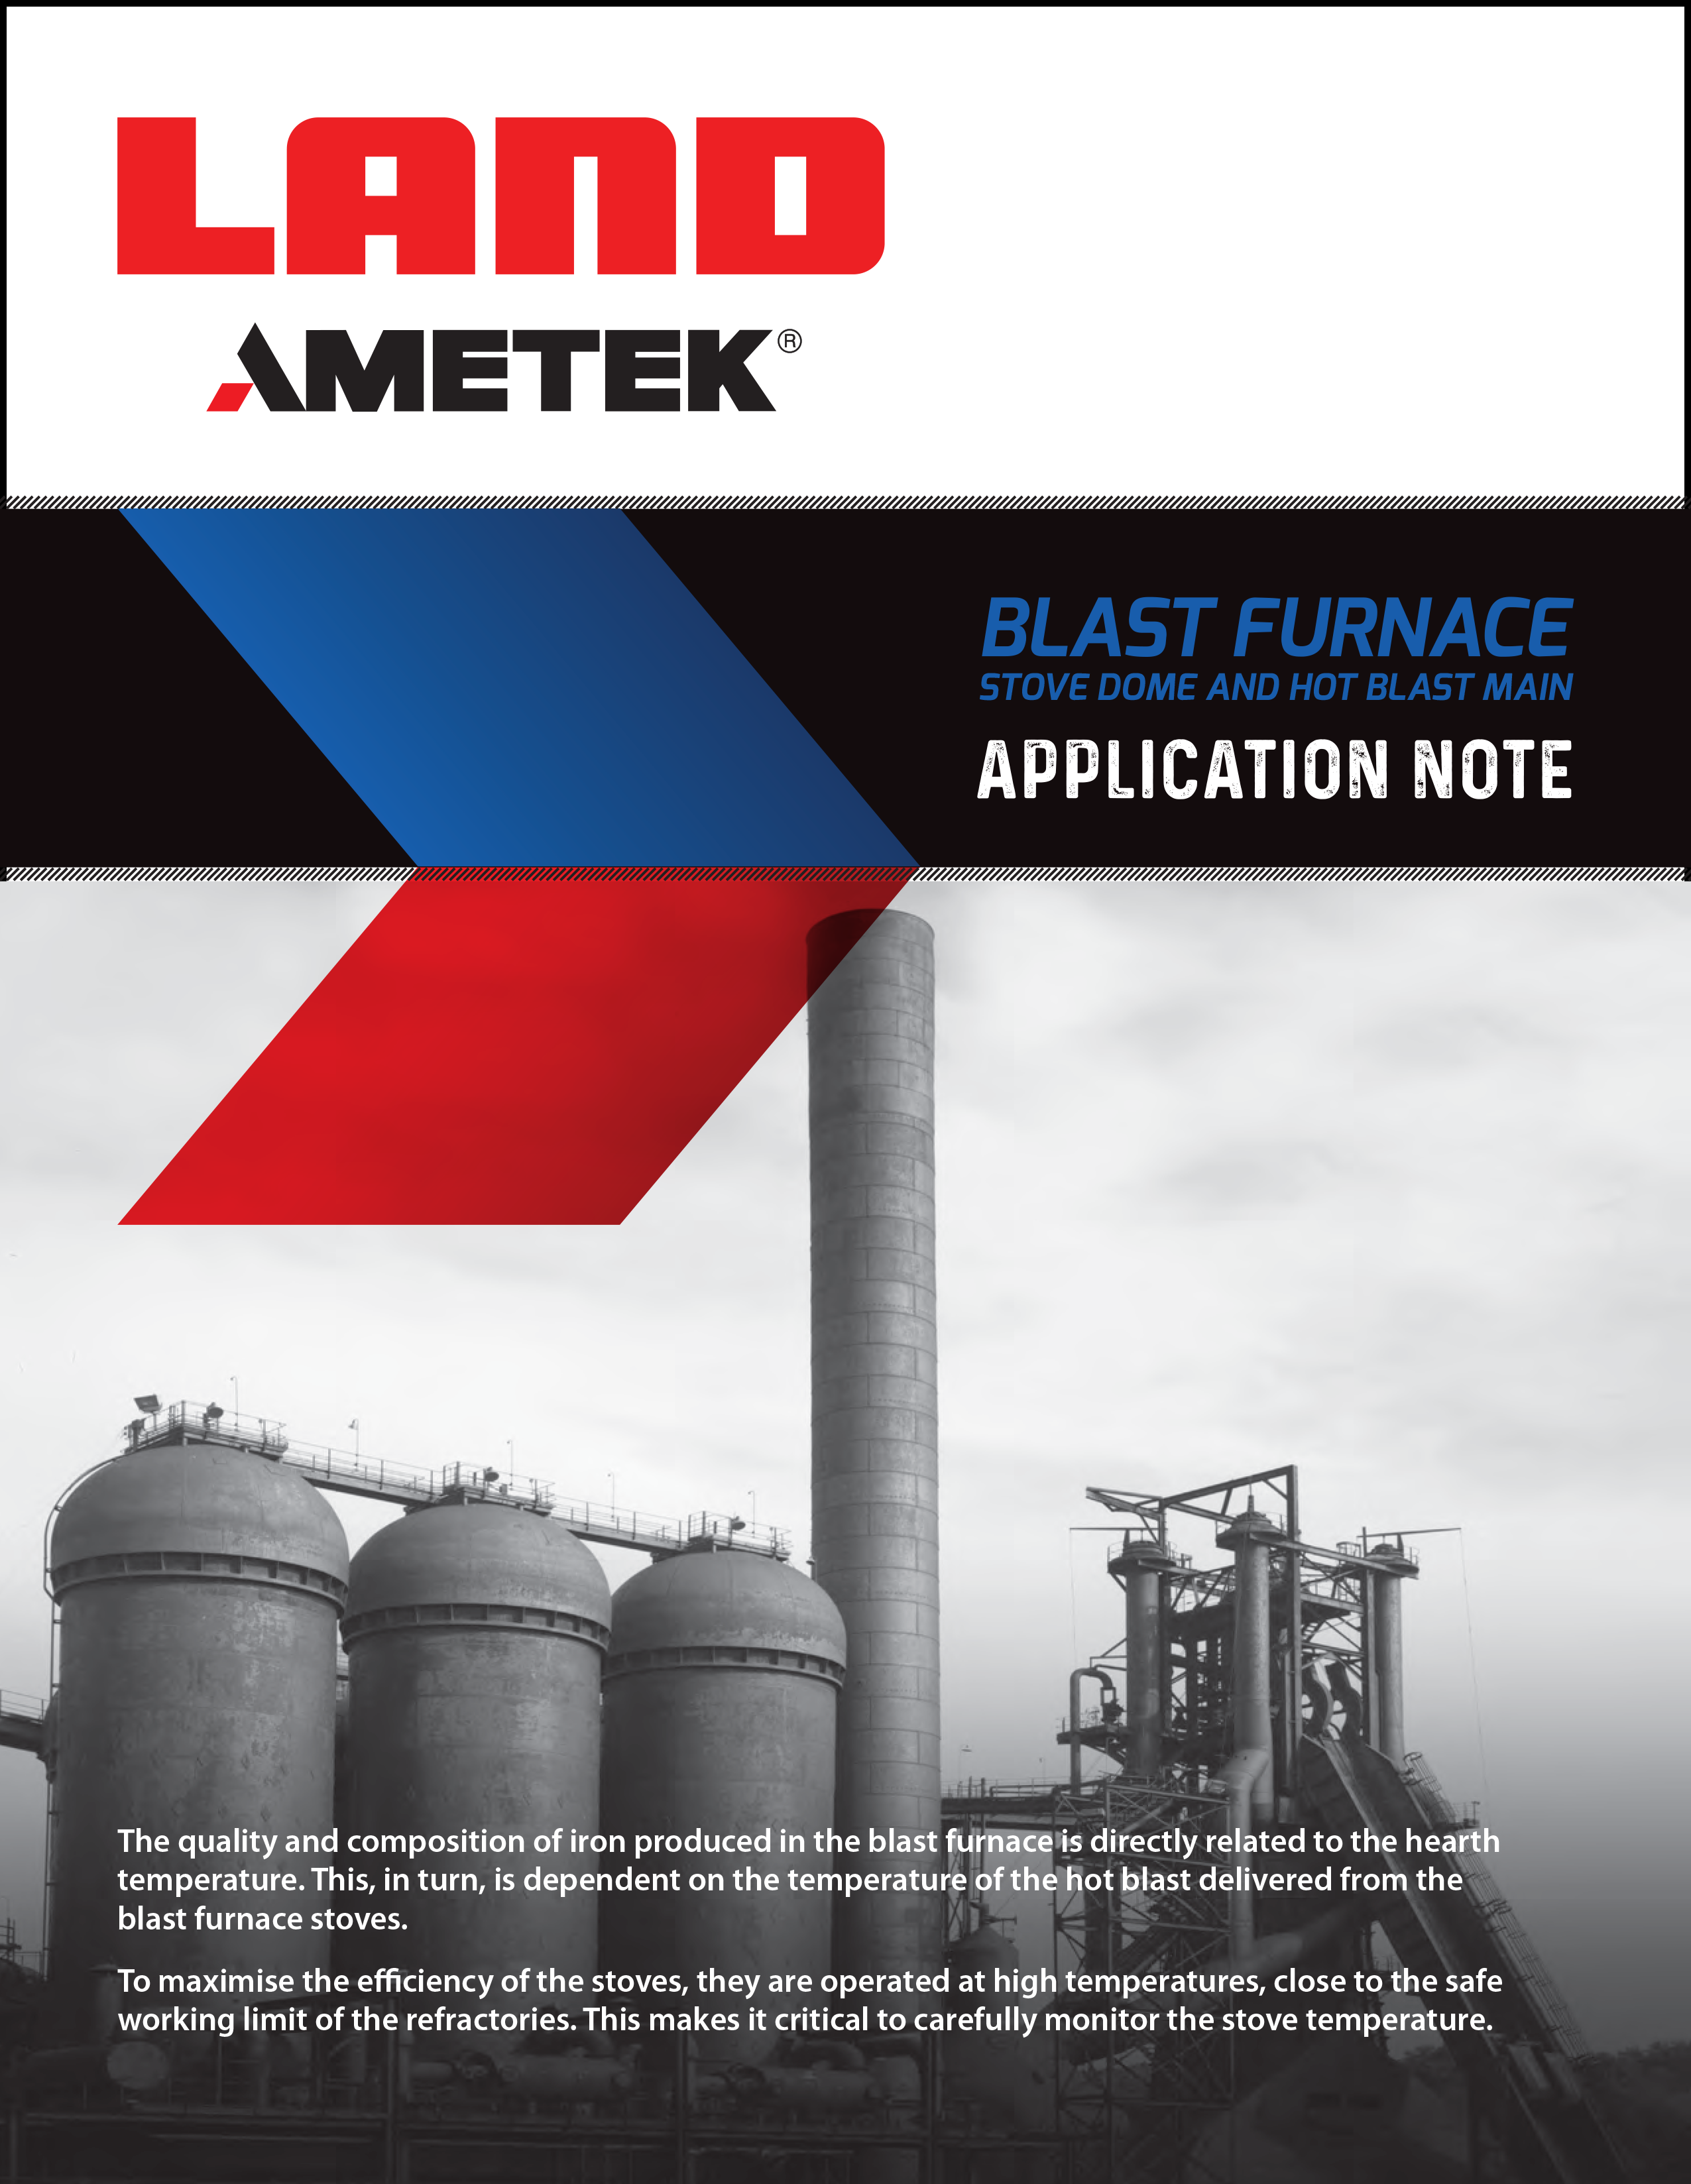 Application Note - Blast Furnace